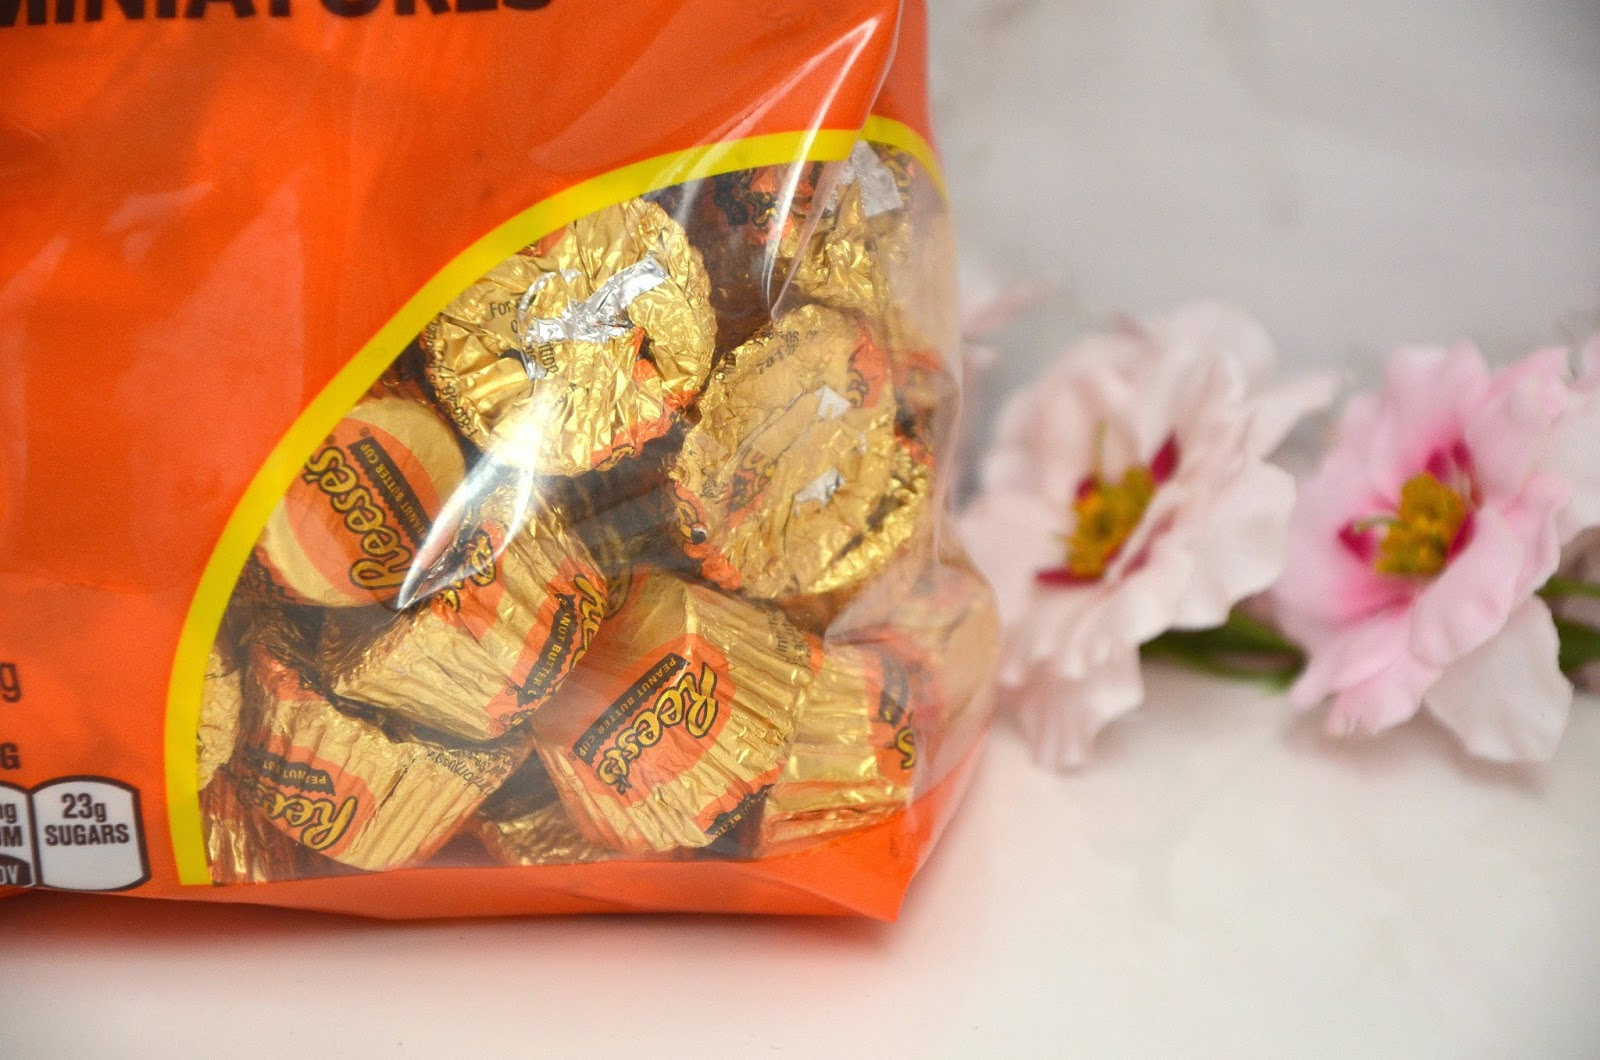 Party Bag Reese's